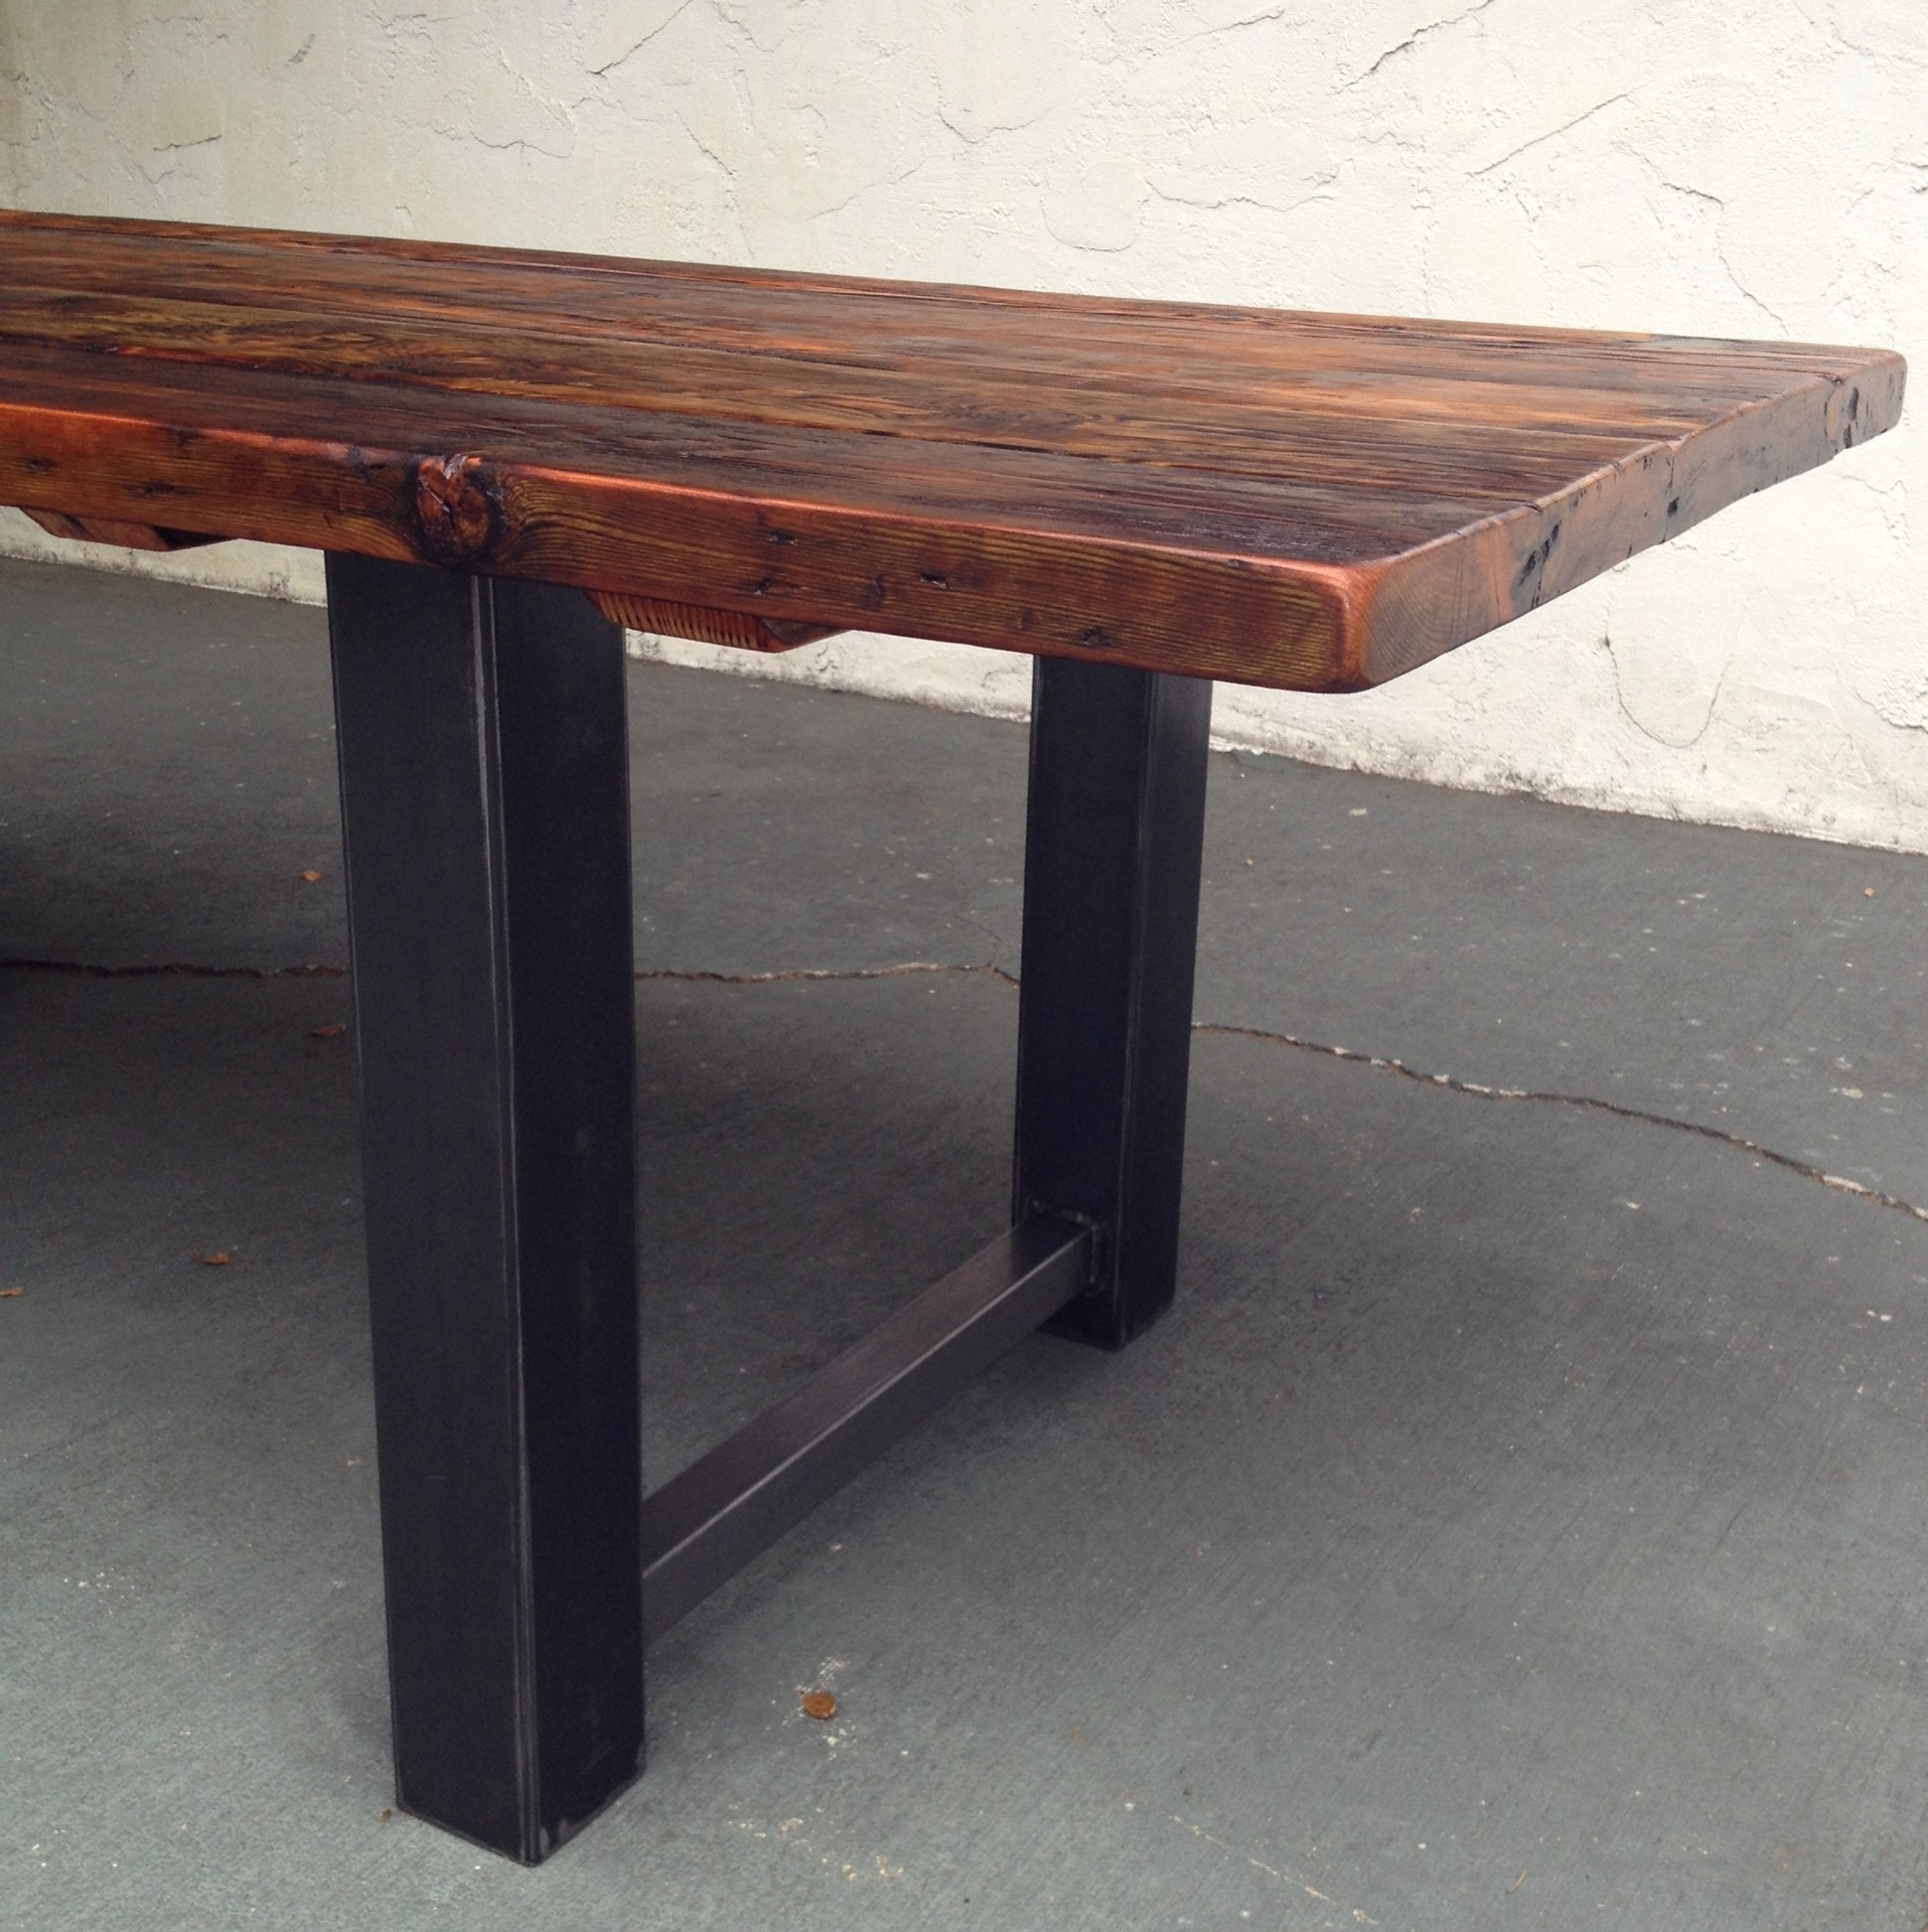 Reclaimed Wood And Steel Dining Table | The Coastal Craftsman Throughout Most Popular Iron And Wood Dining Tables (View 15 of 20)